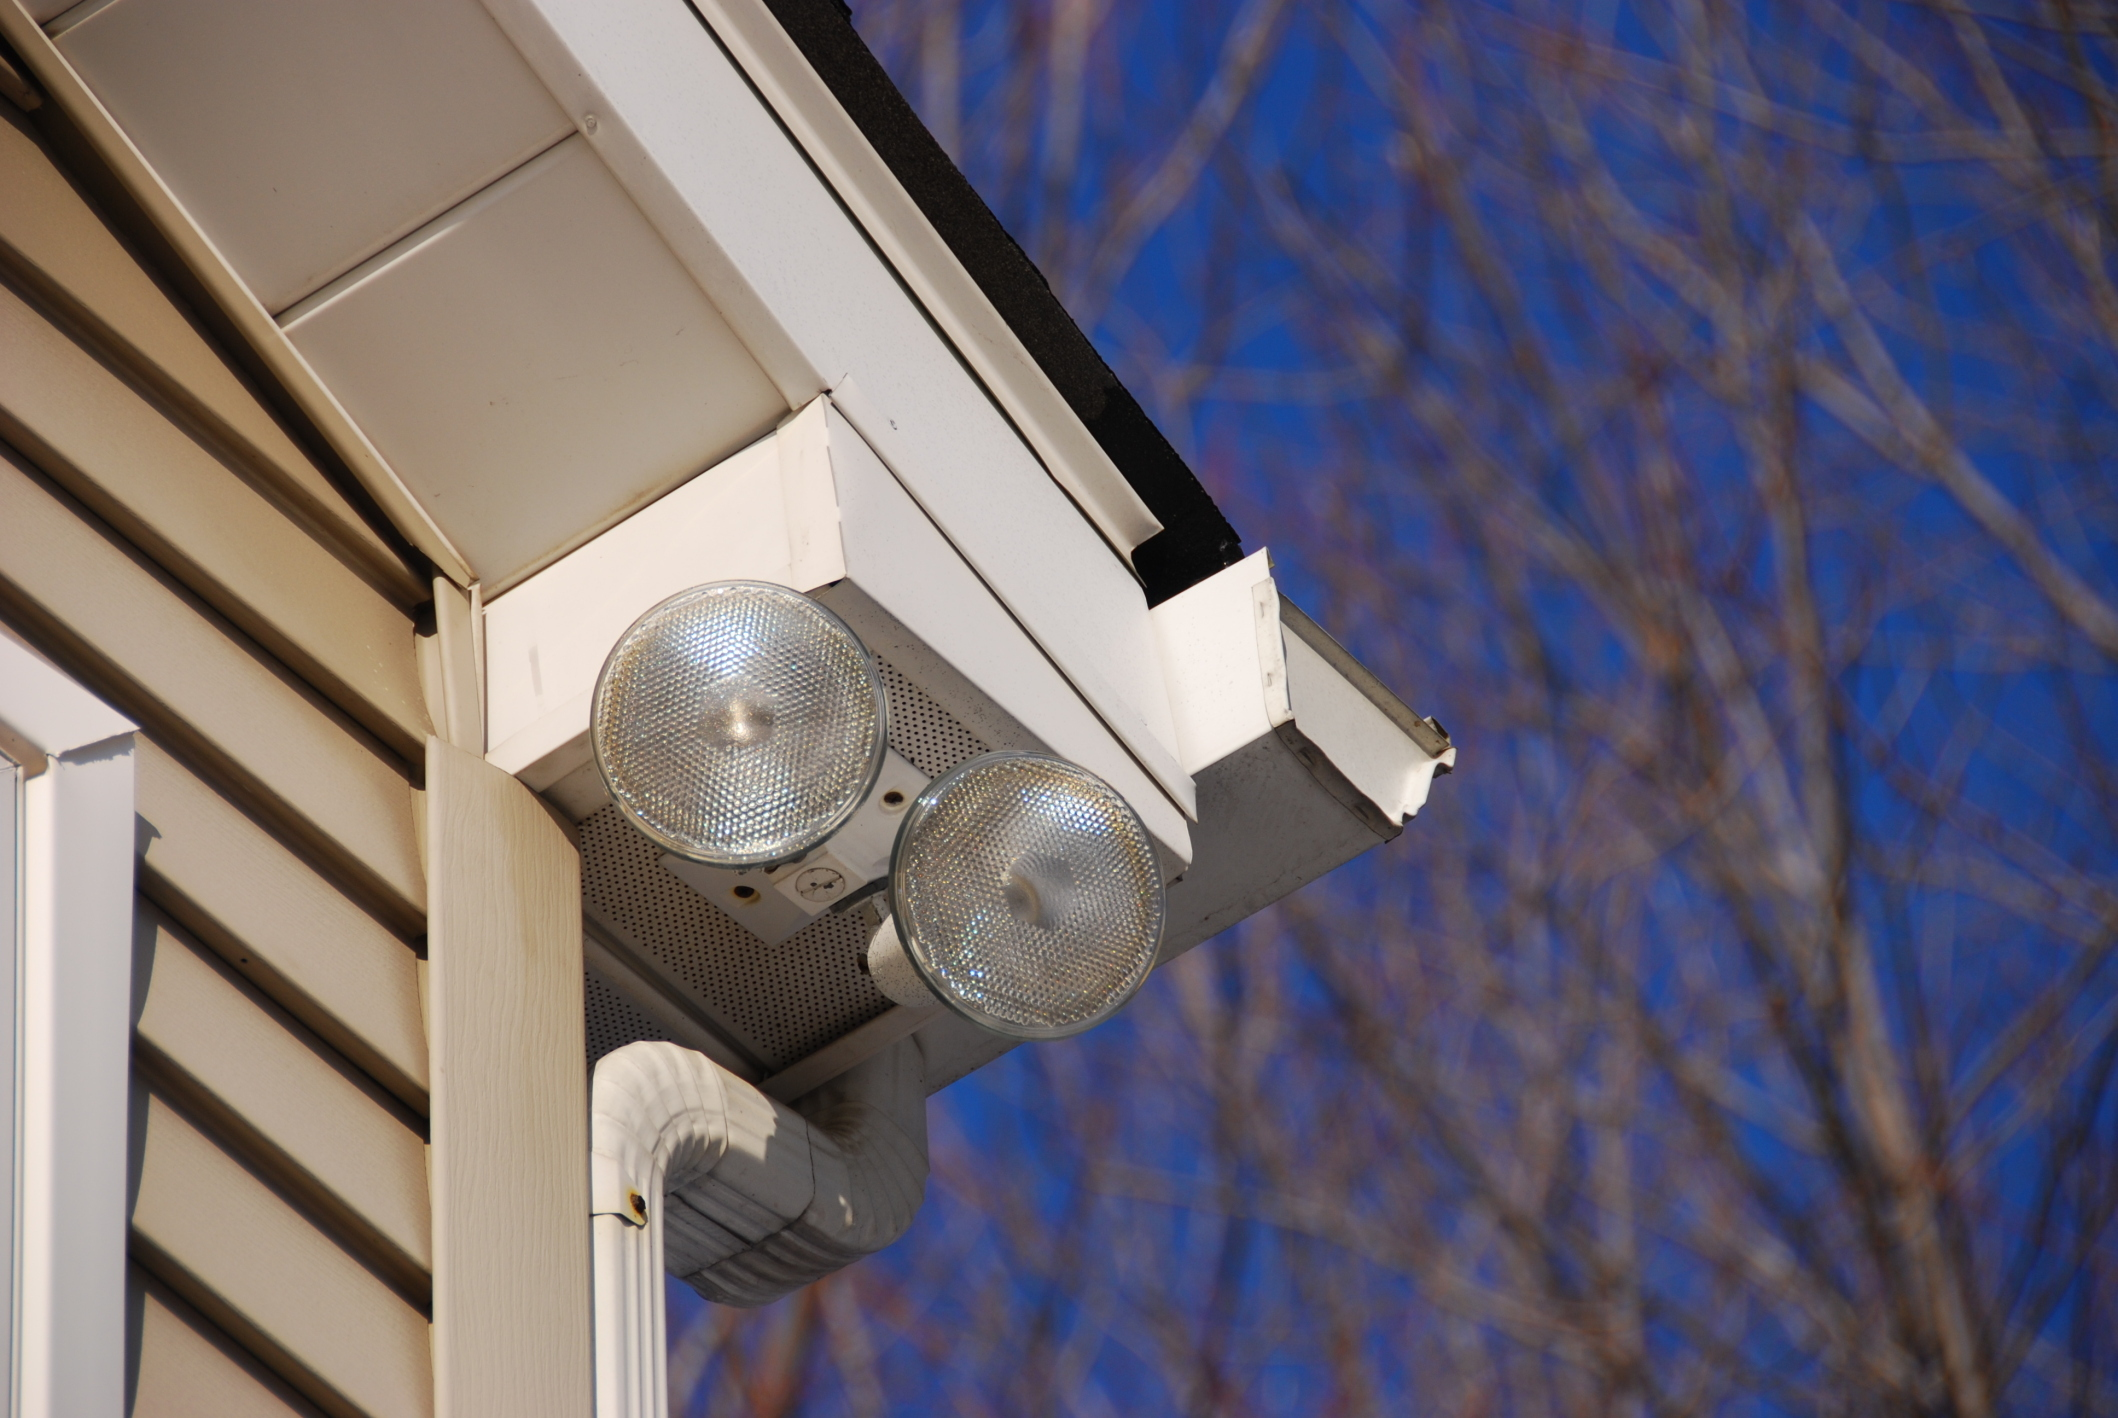 8 Reasons To Invest In Security Lights For Your Home